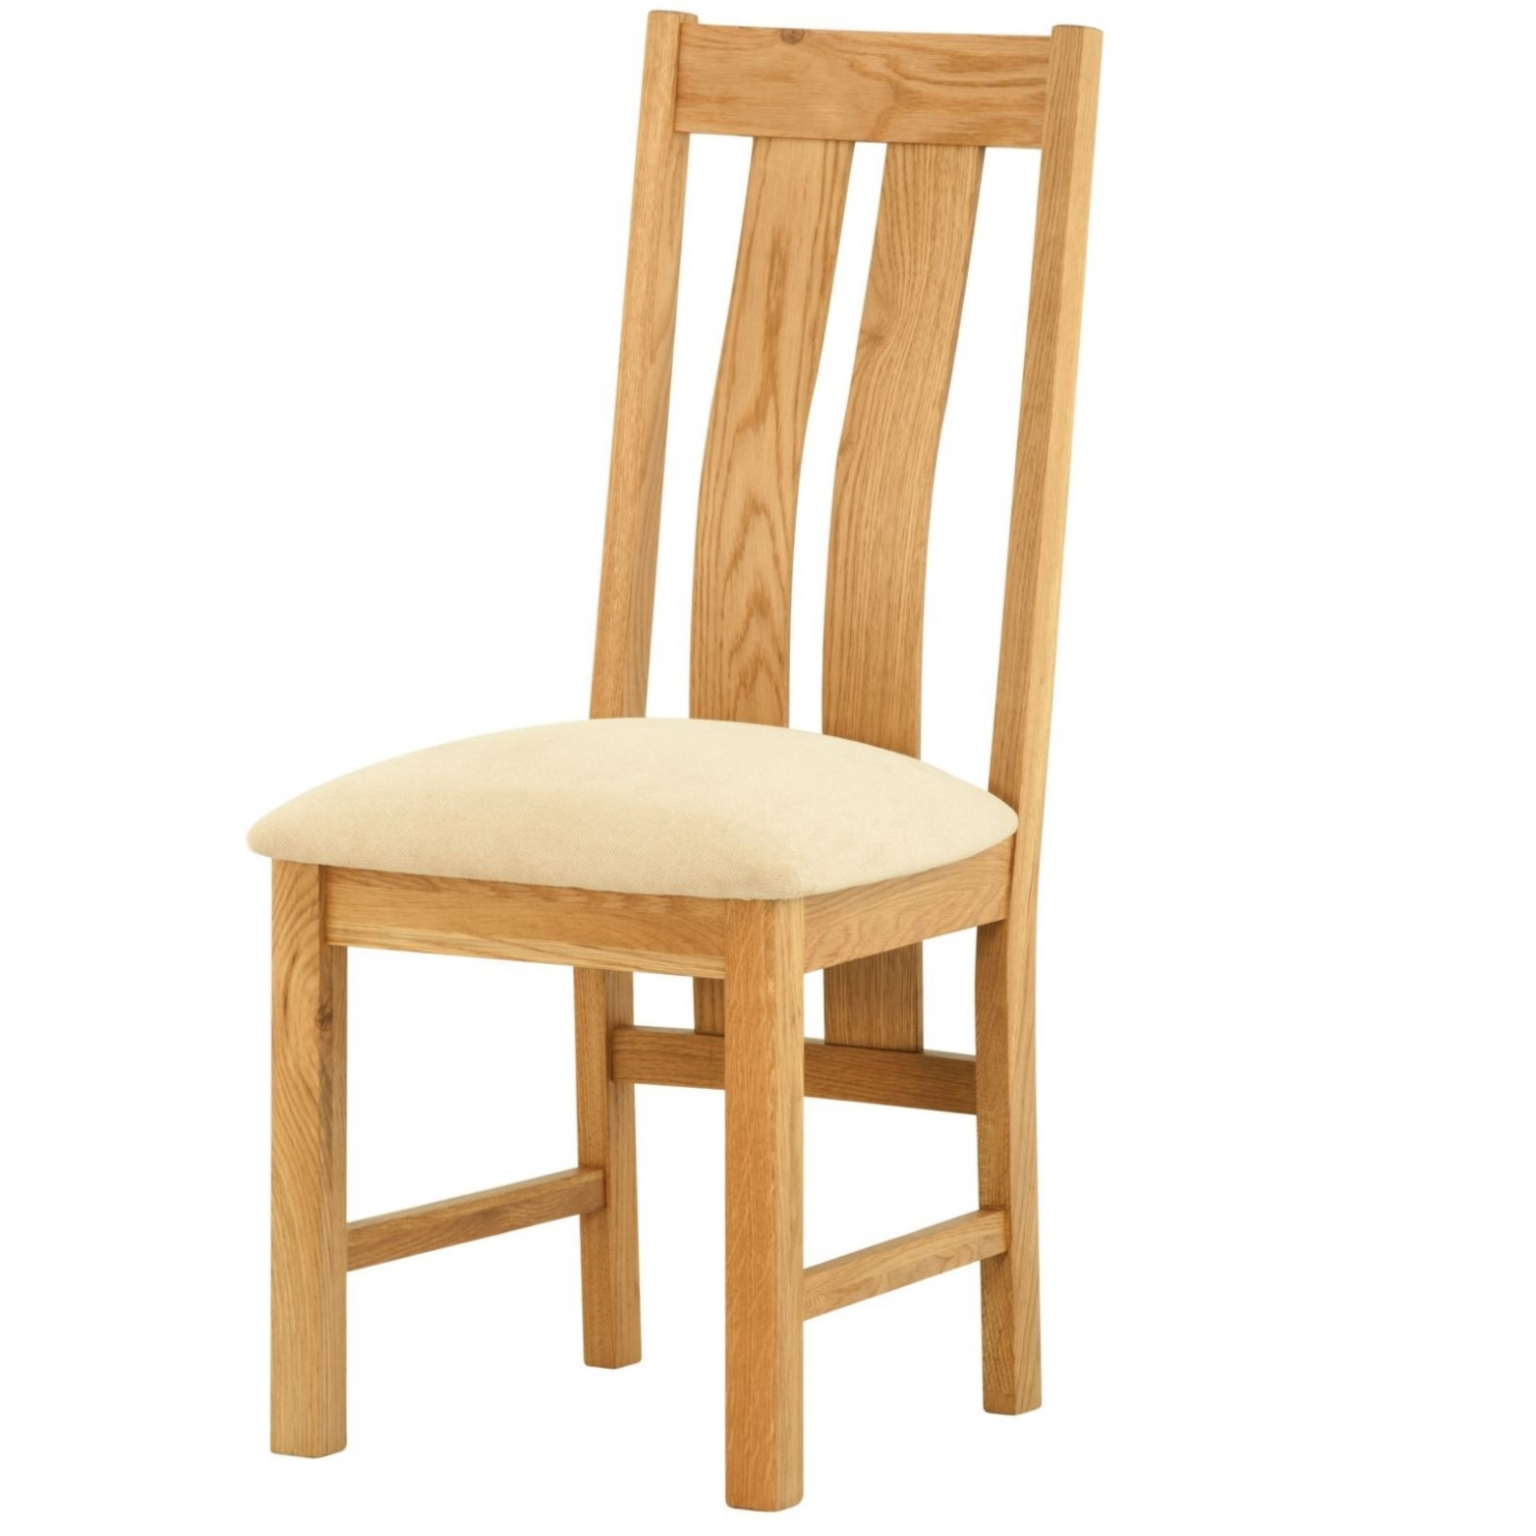 Cotswold Dining Chair - Oak